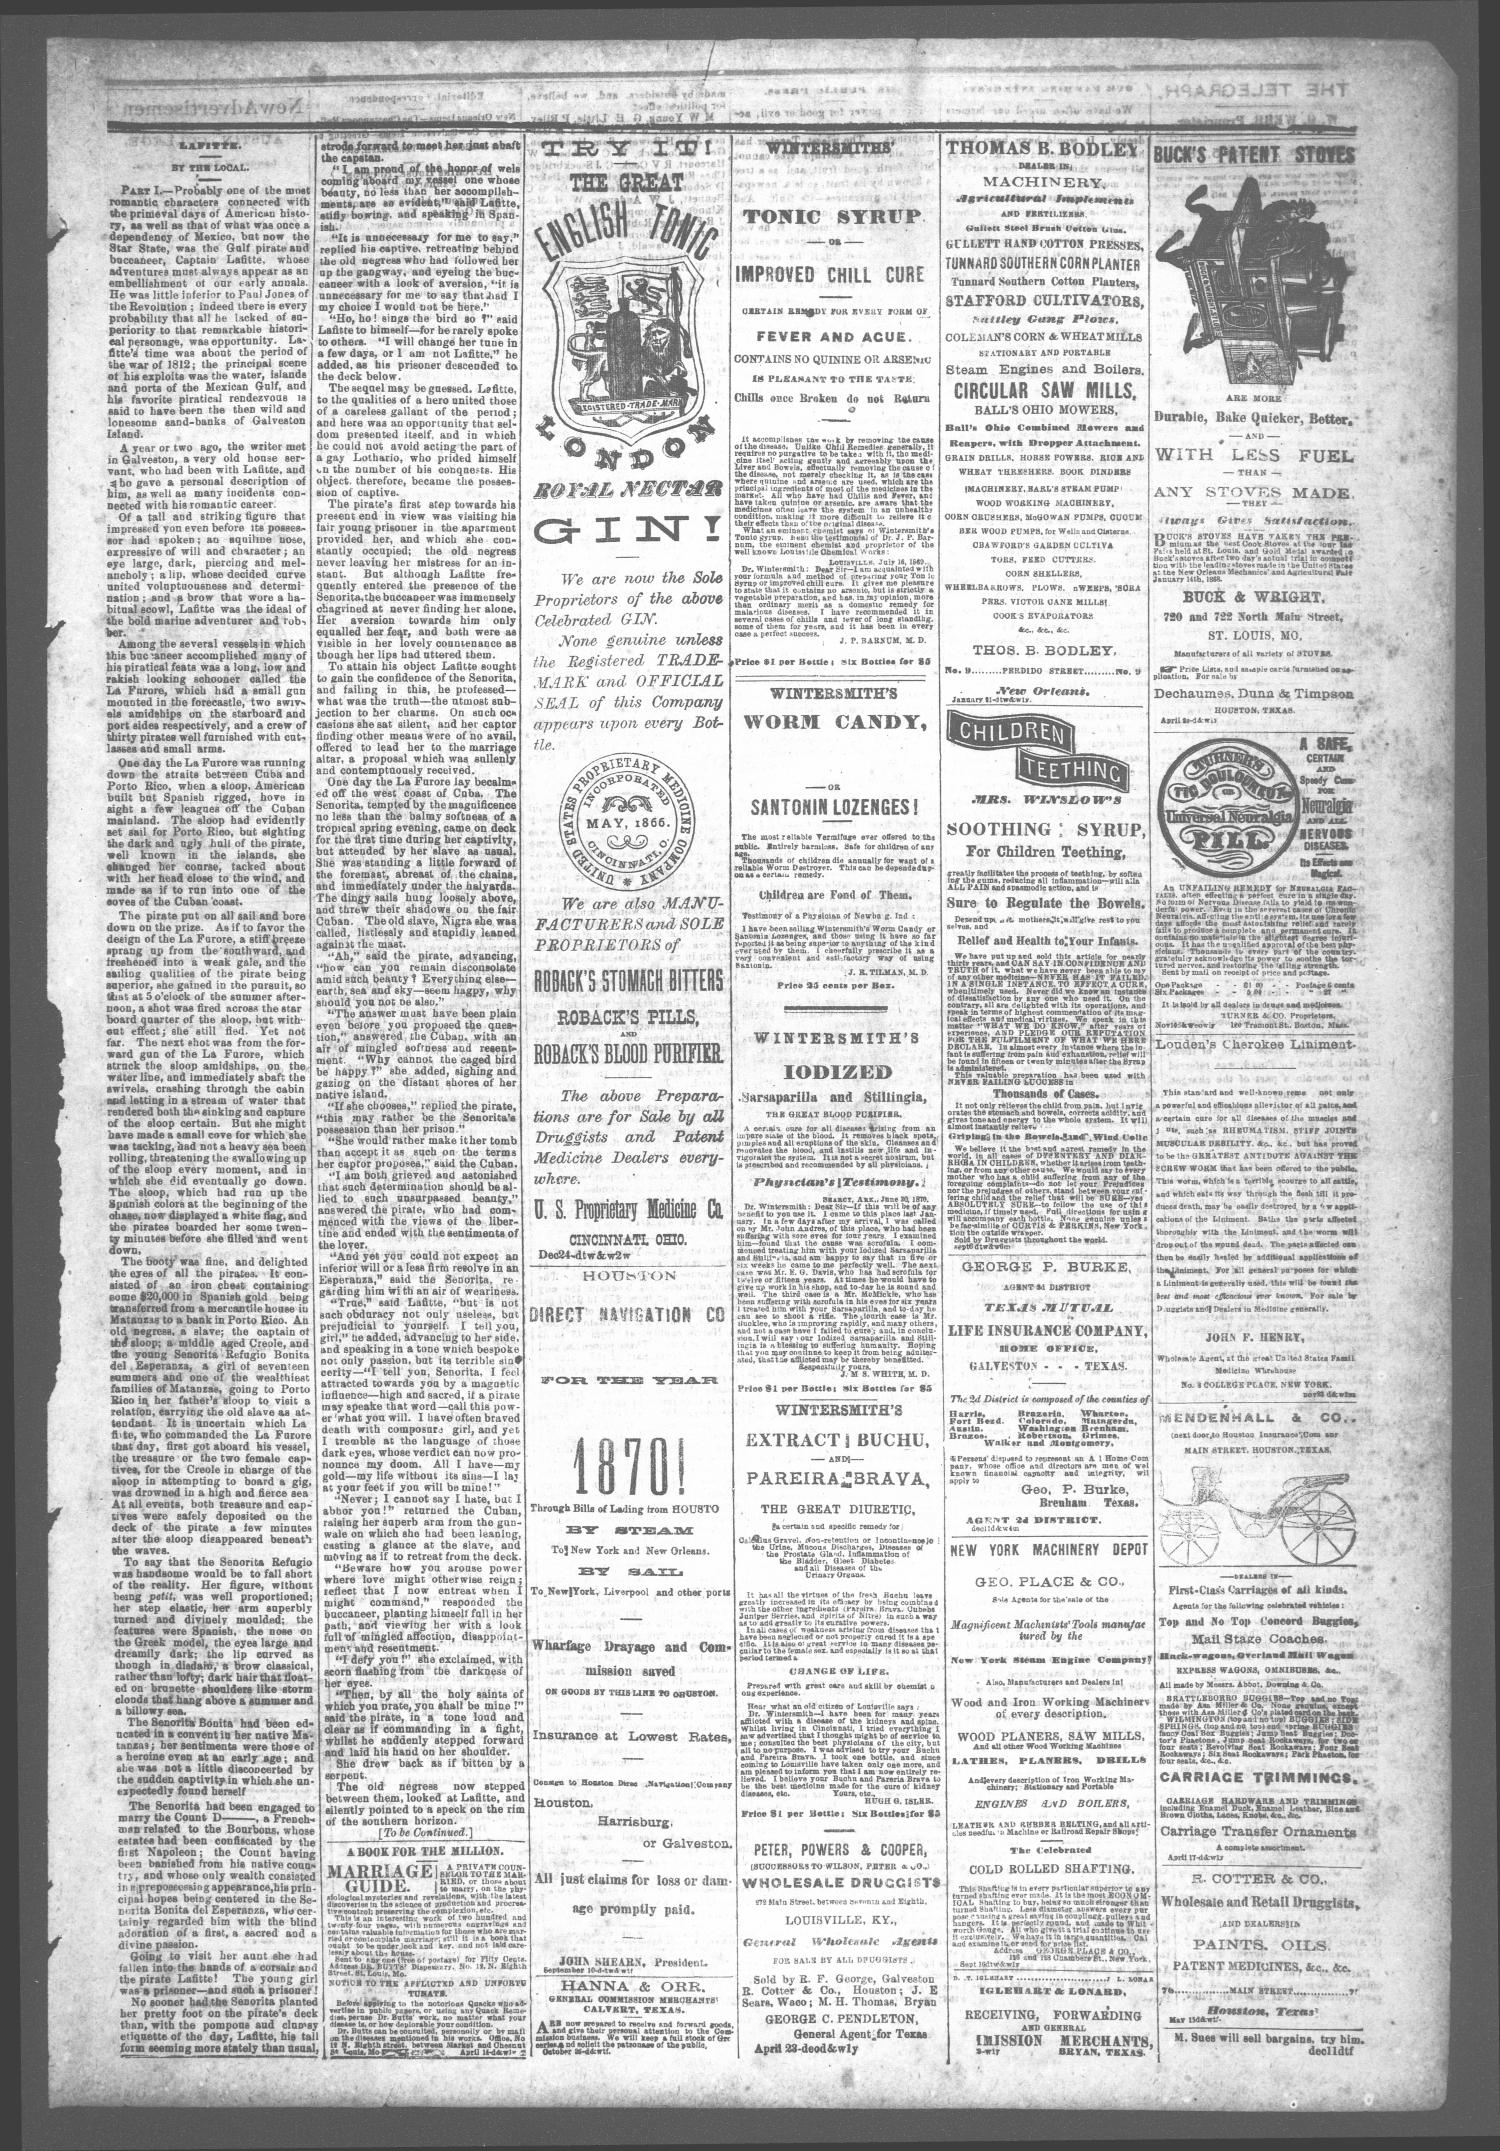 The Houston Telegraph (Houston, Tex ), Vol  36, No  39, Ed